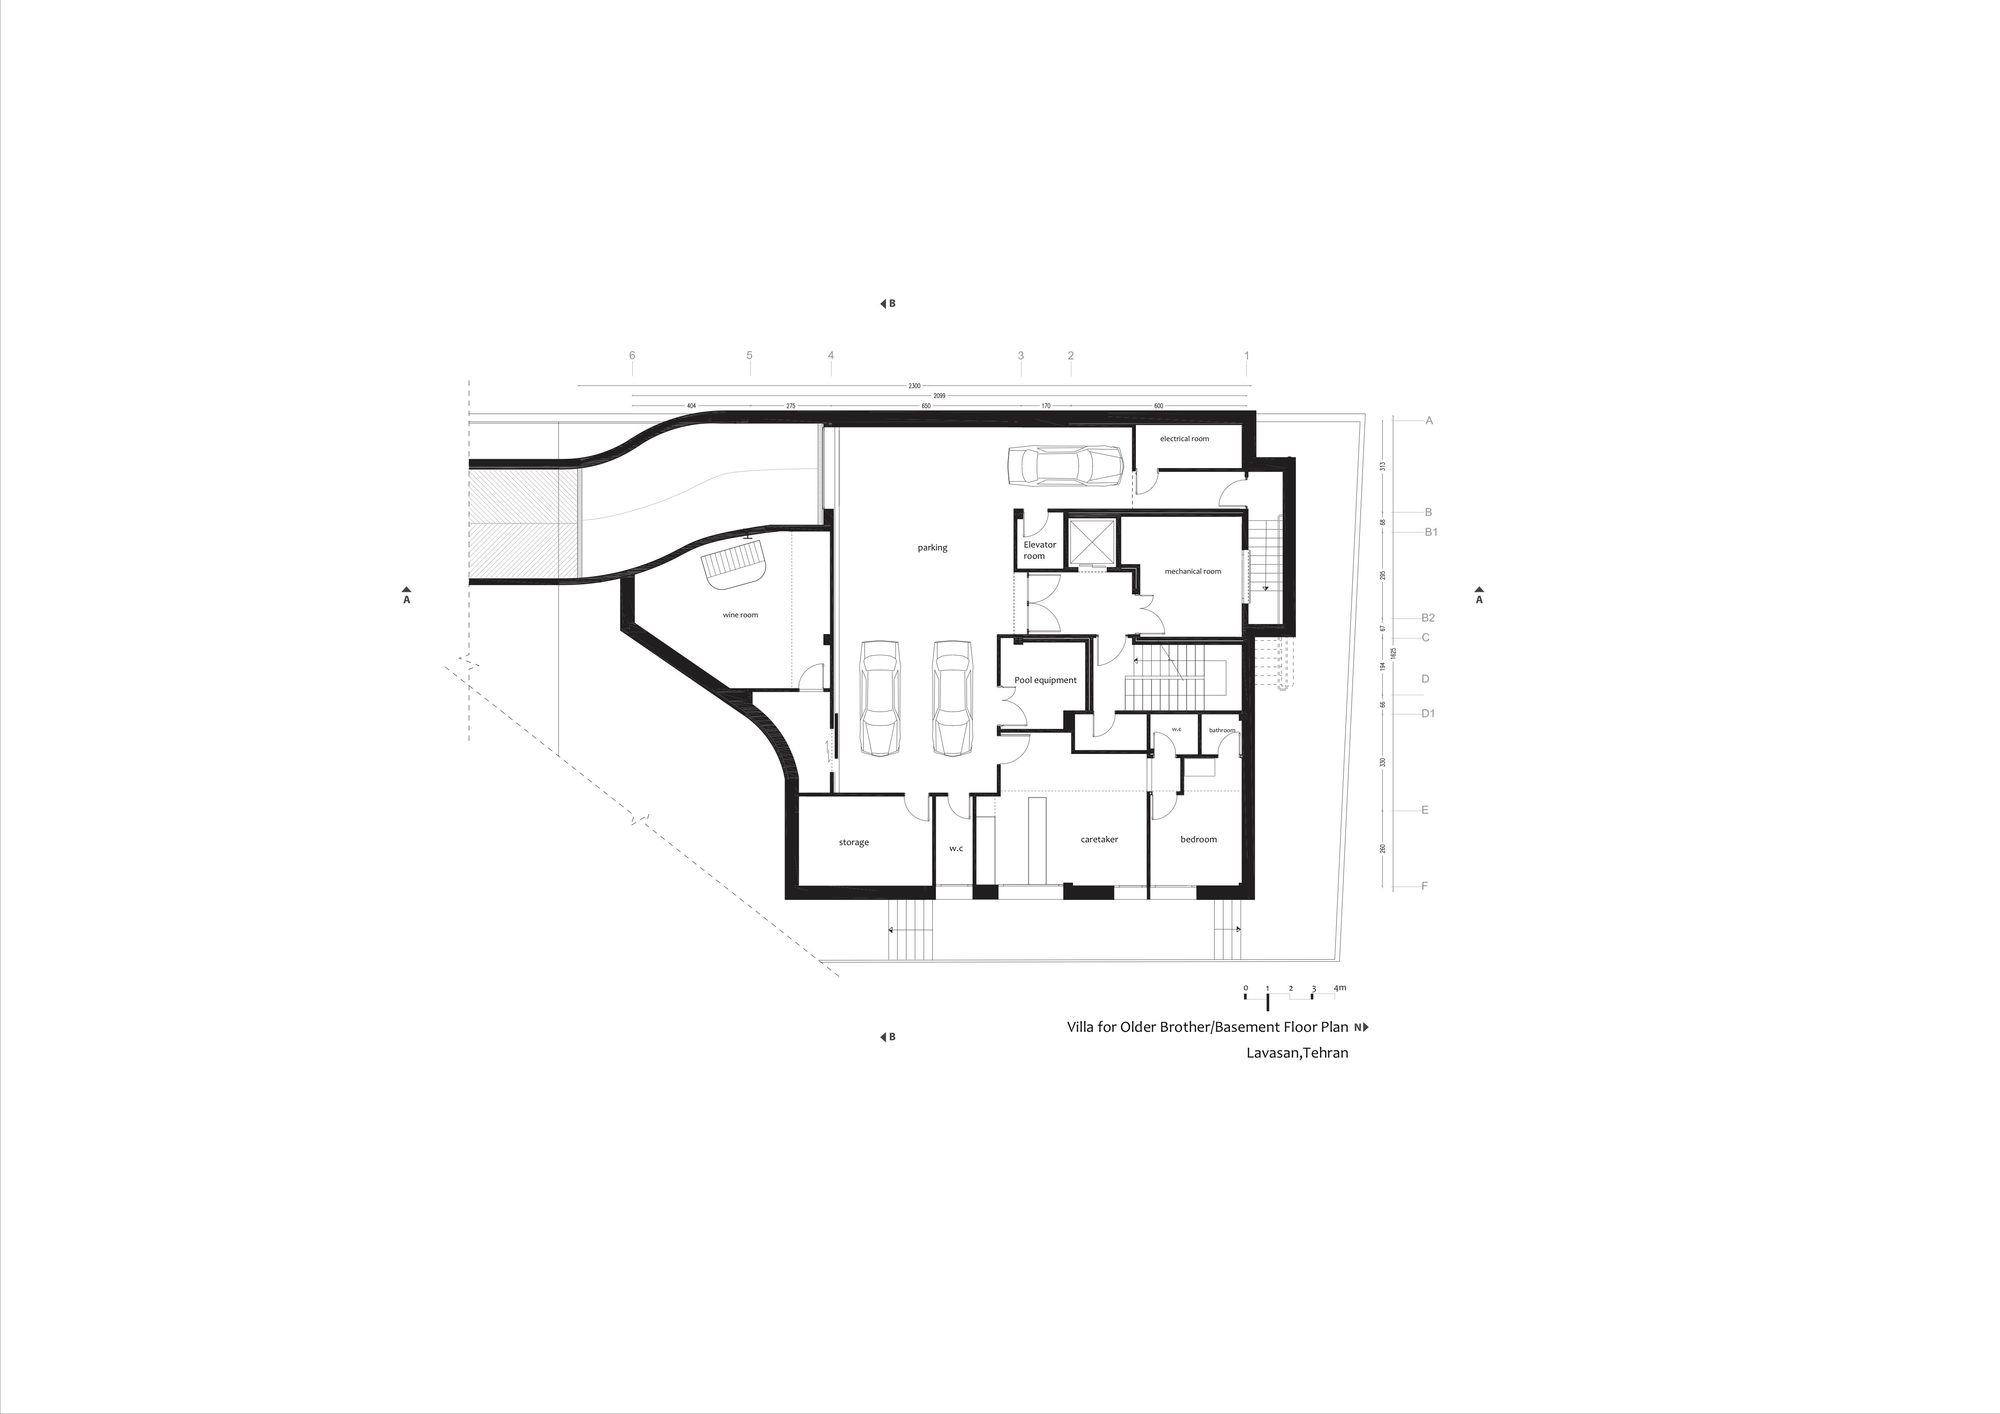 hight resolution of villa electrical plan